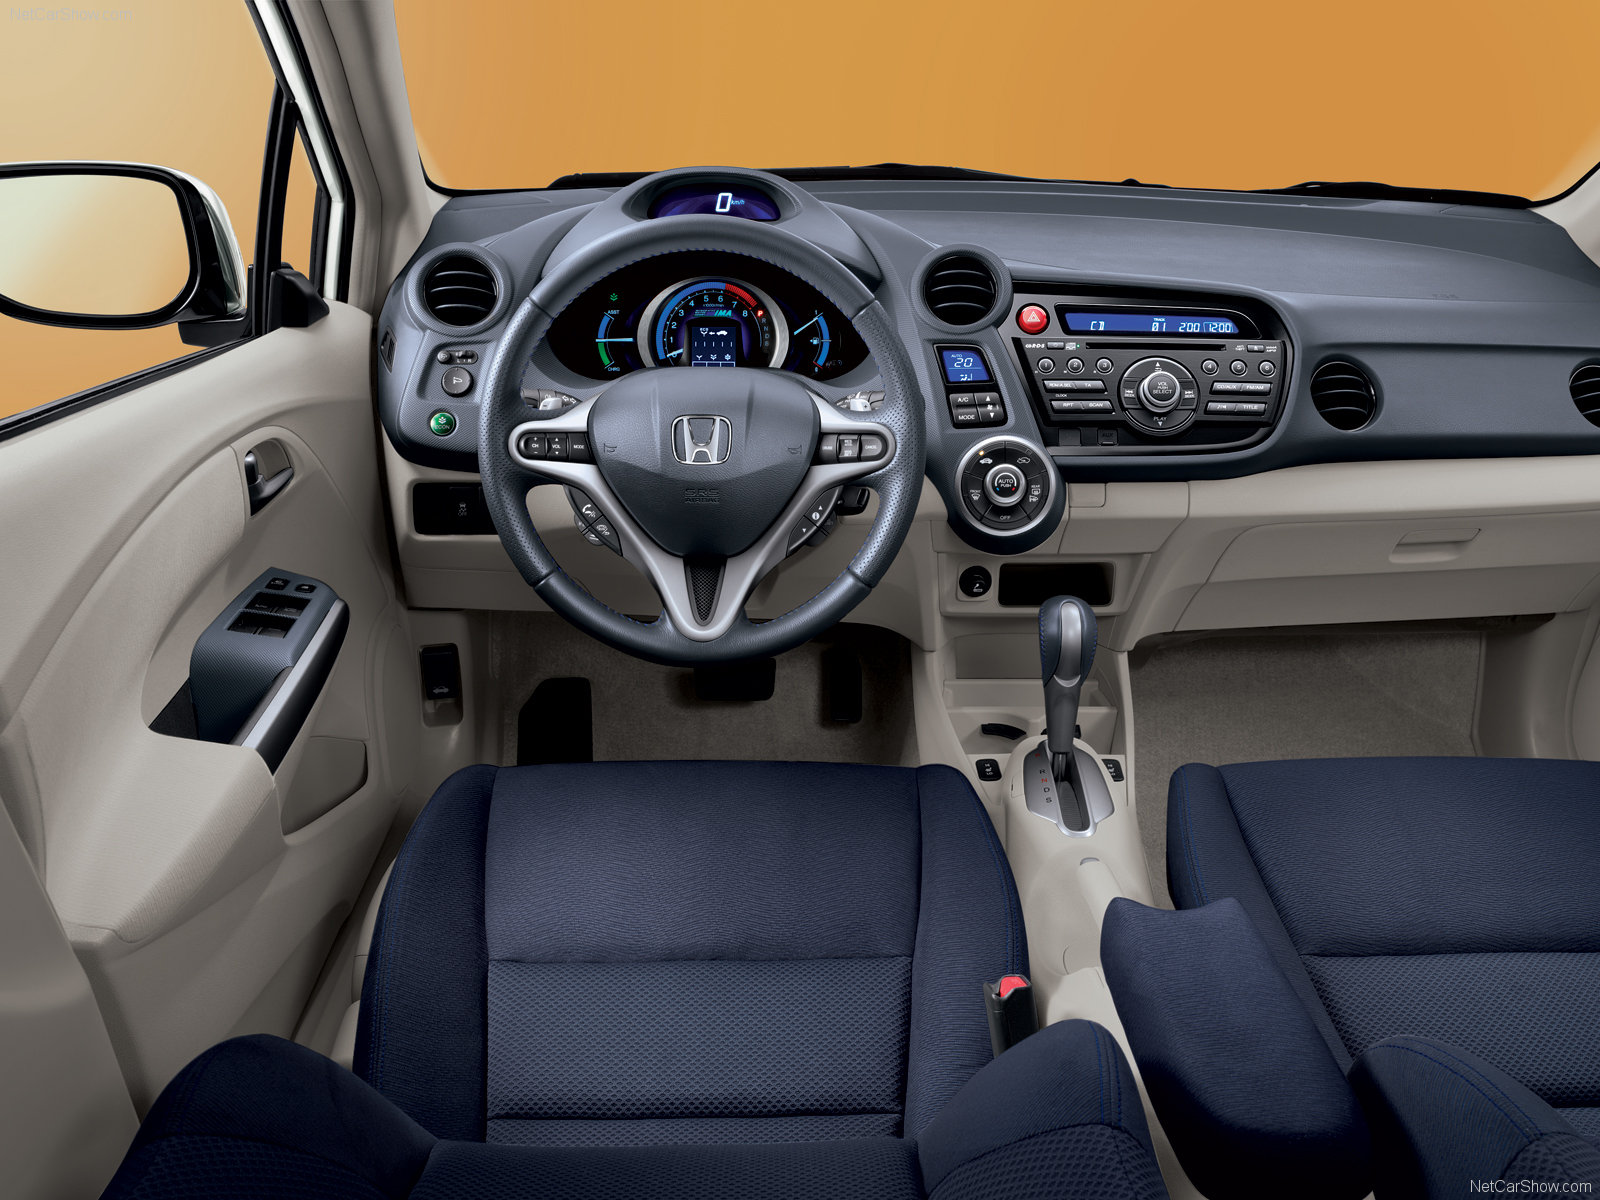 Honda Insight 2010 - Интерьер